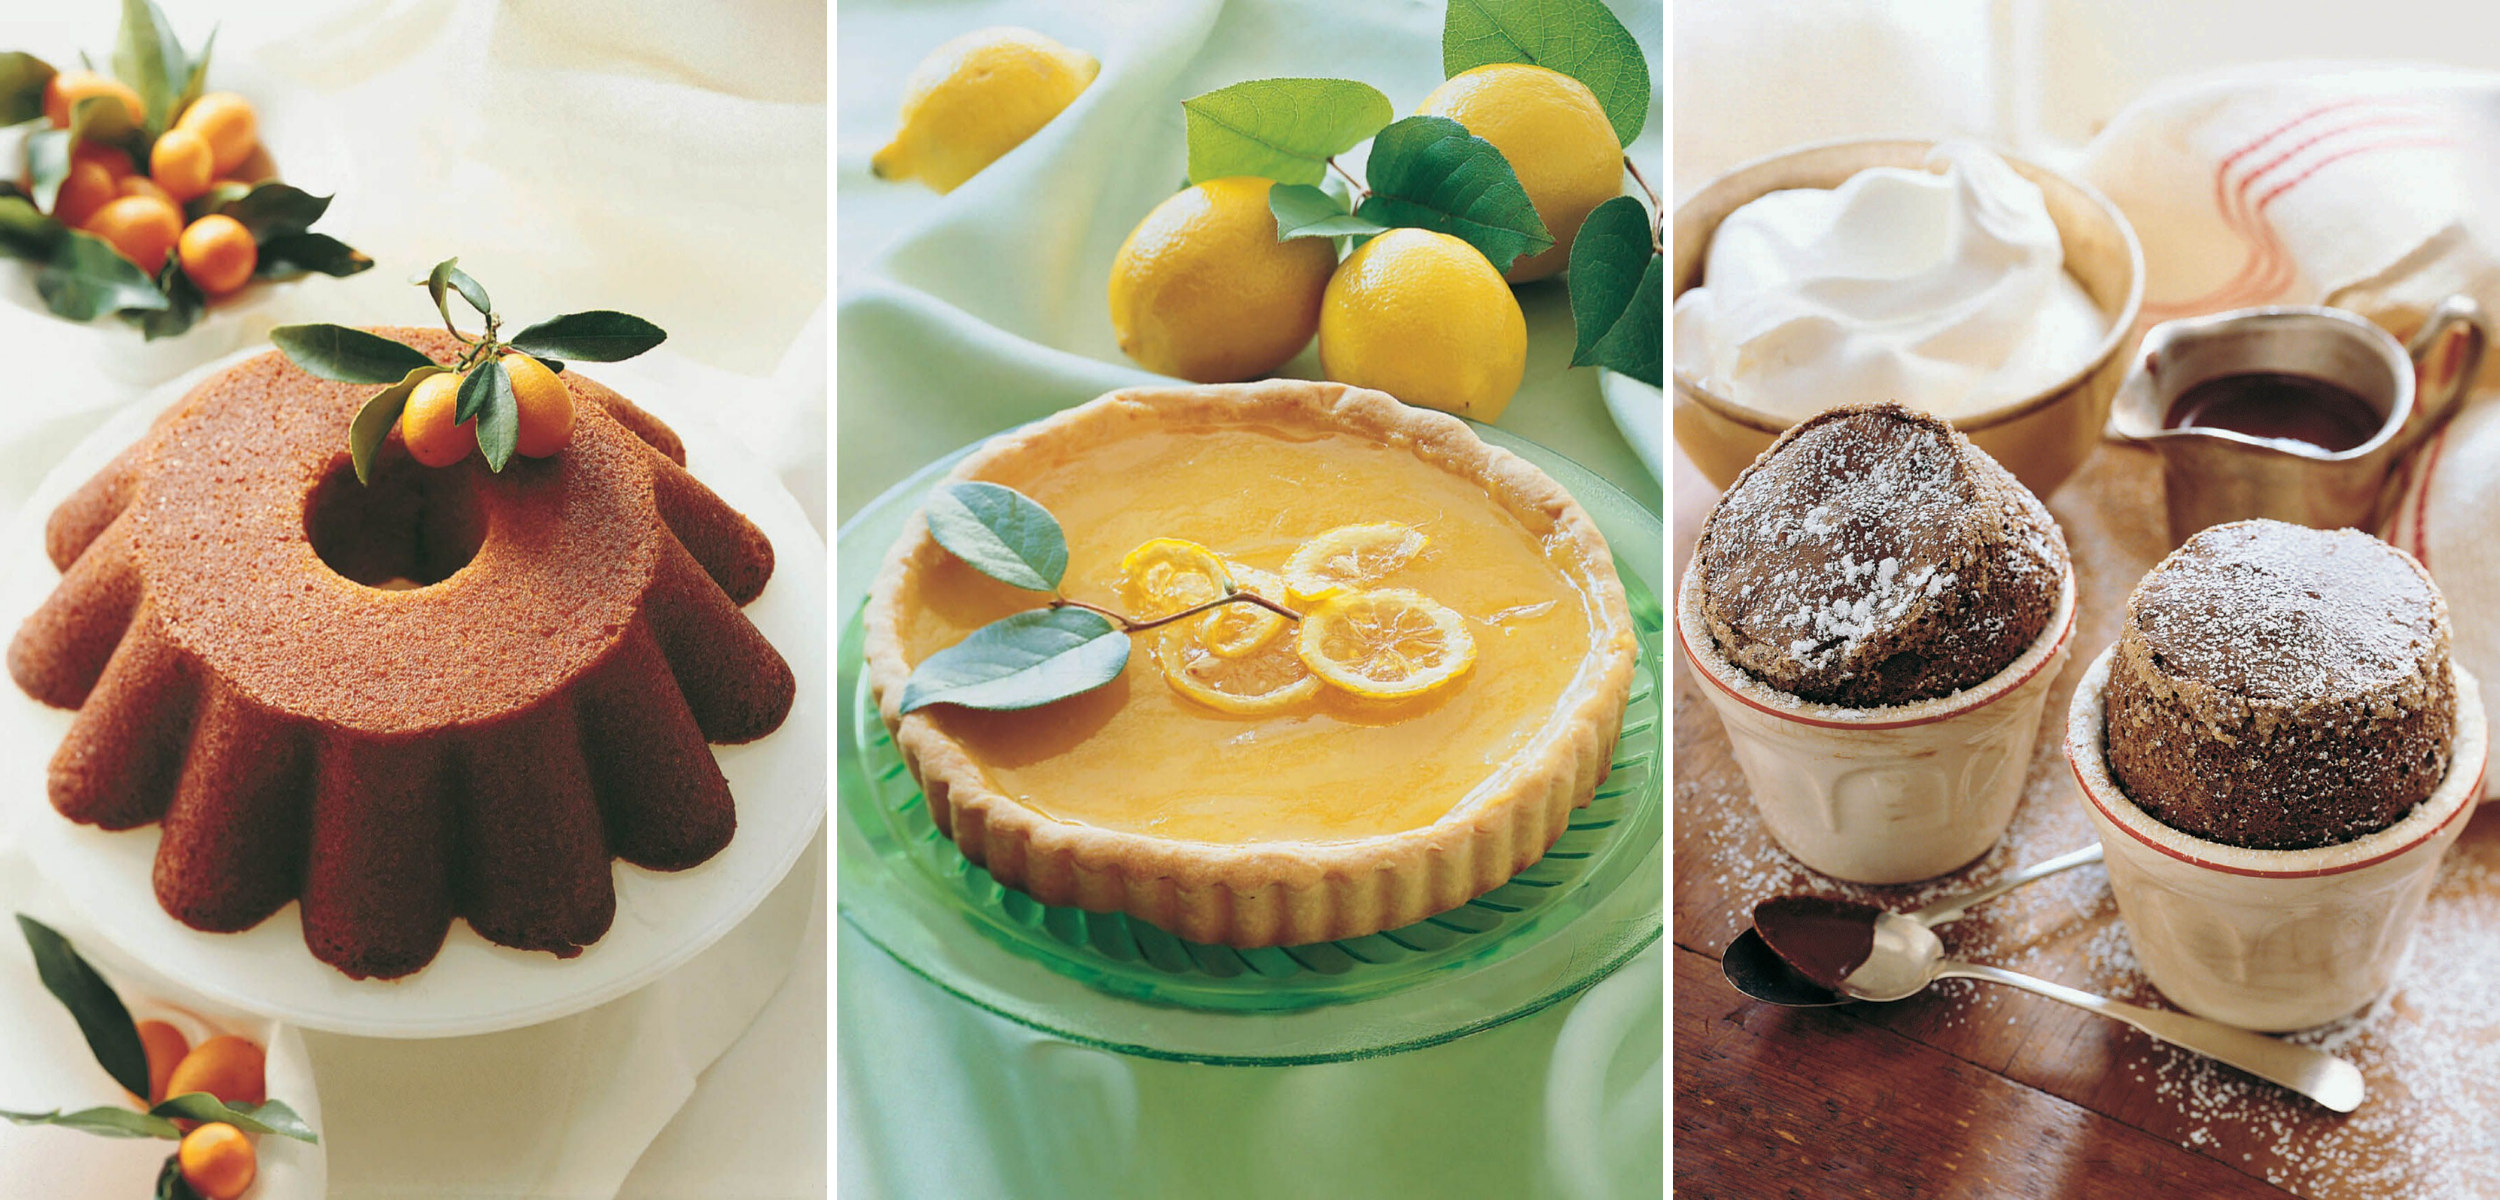 Great St. Louis Orange Ring Cake, The World's Best Lemon Tart and Edna Lewis Chocolate Soufflé from  Classic Home Desserts  by Richard Sax